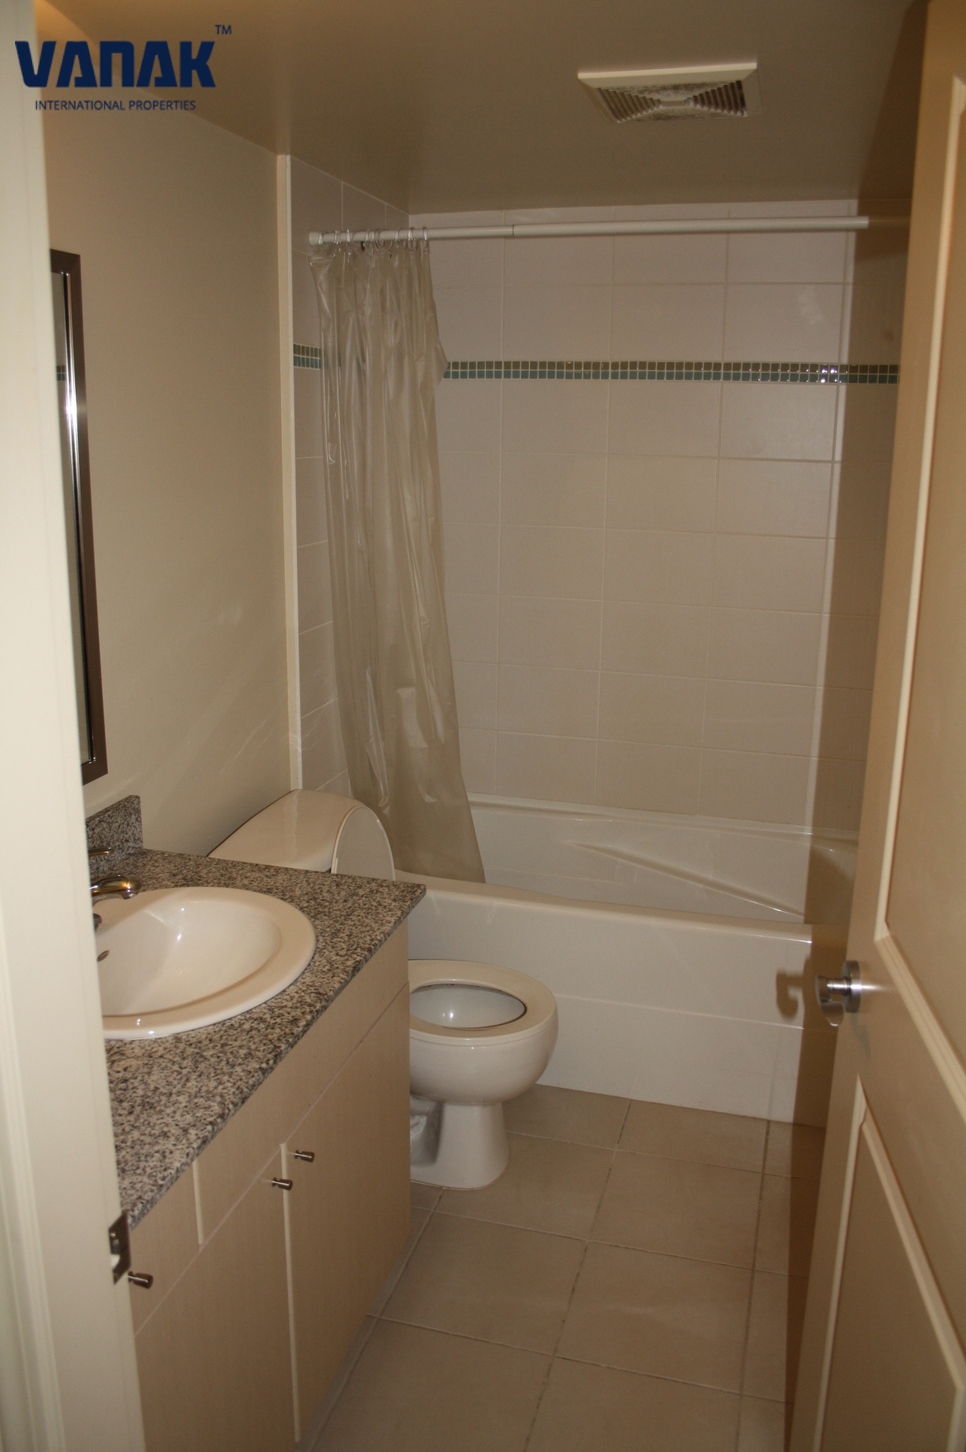 9232 University Crescent,Burnaby,BC,BC,Canada,1 BathroomBathrooms,Apartment,NOVO II,9232 University Crescent ,6,1474